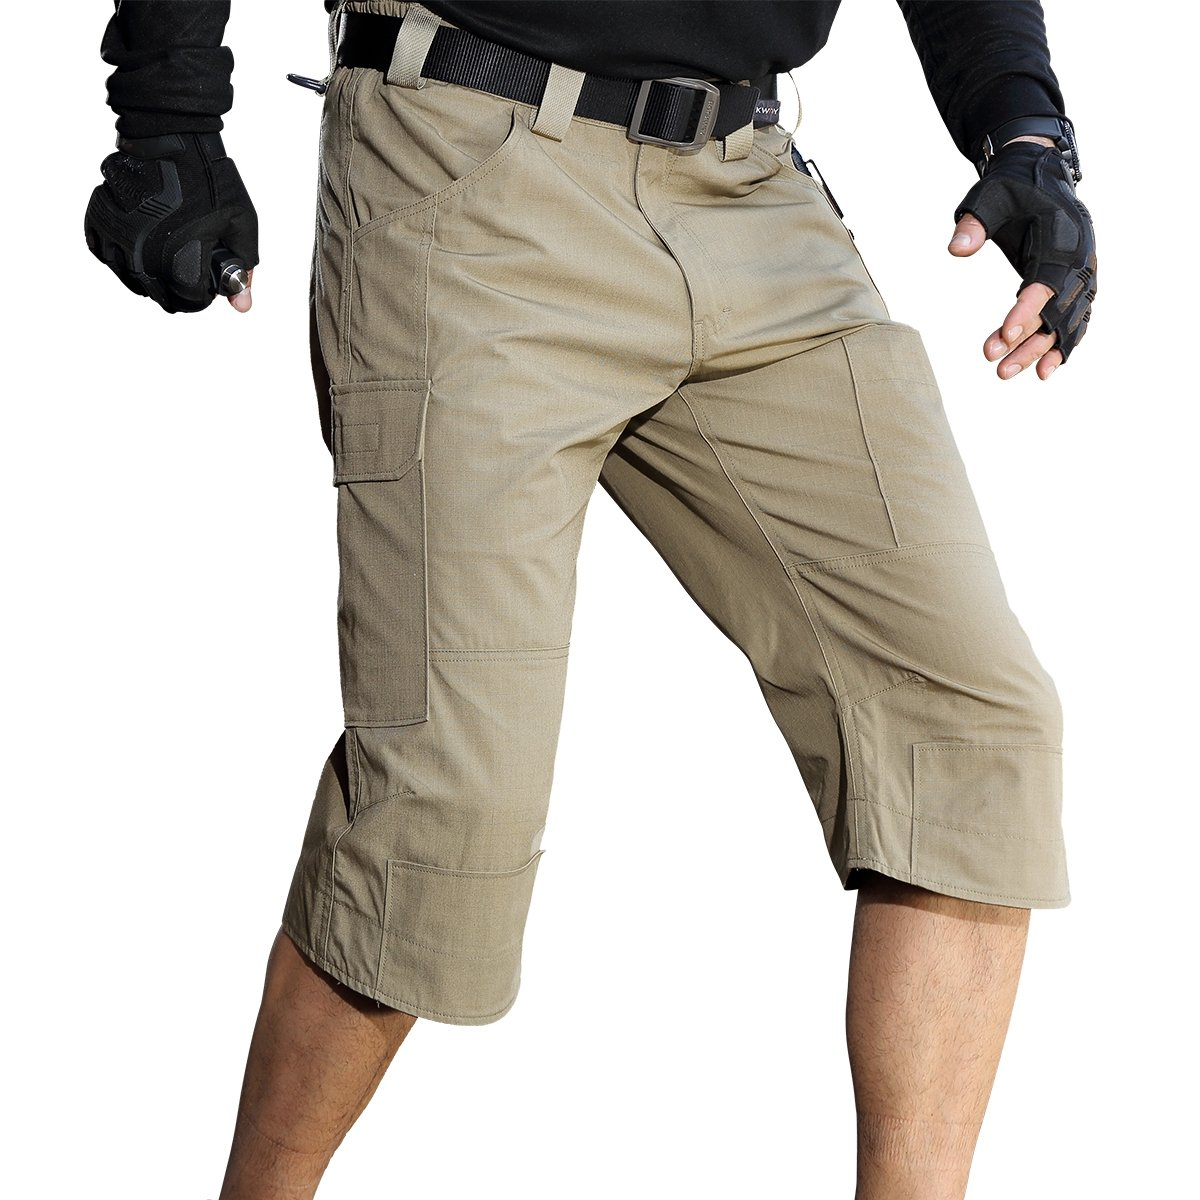 FREE SOLDIER Men's Capri Shorts Pants Casual 3/4 Water Resistant Multi Pockets Tactical Cargo Short (Brown W32)